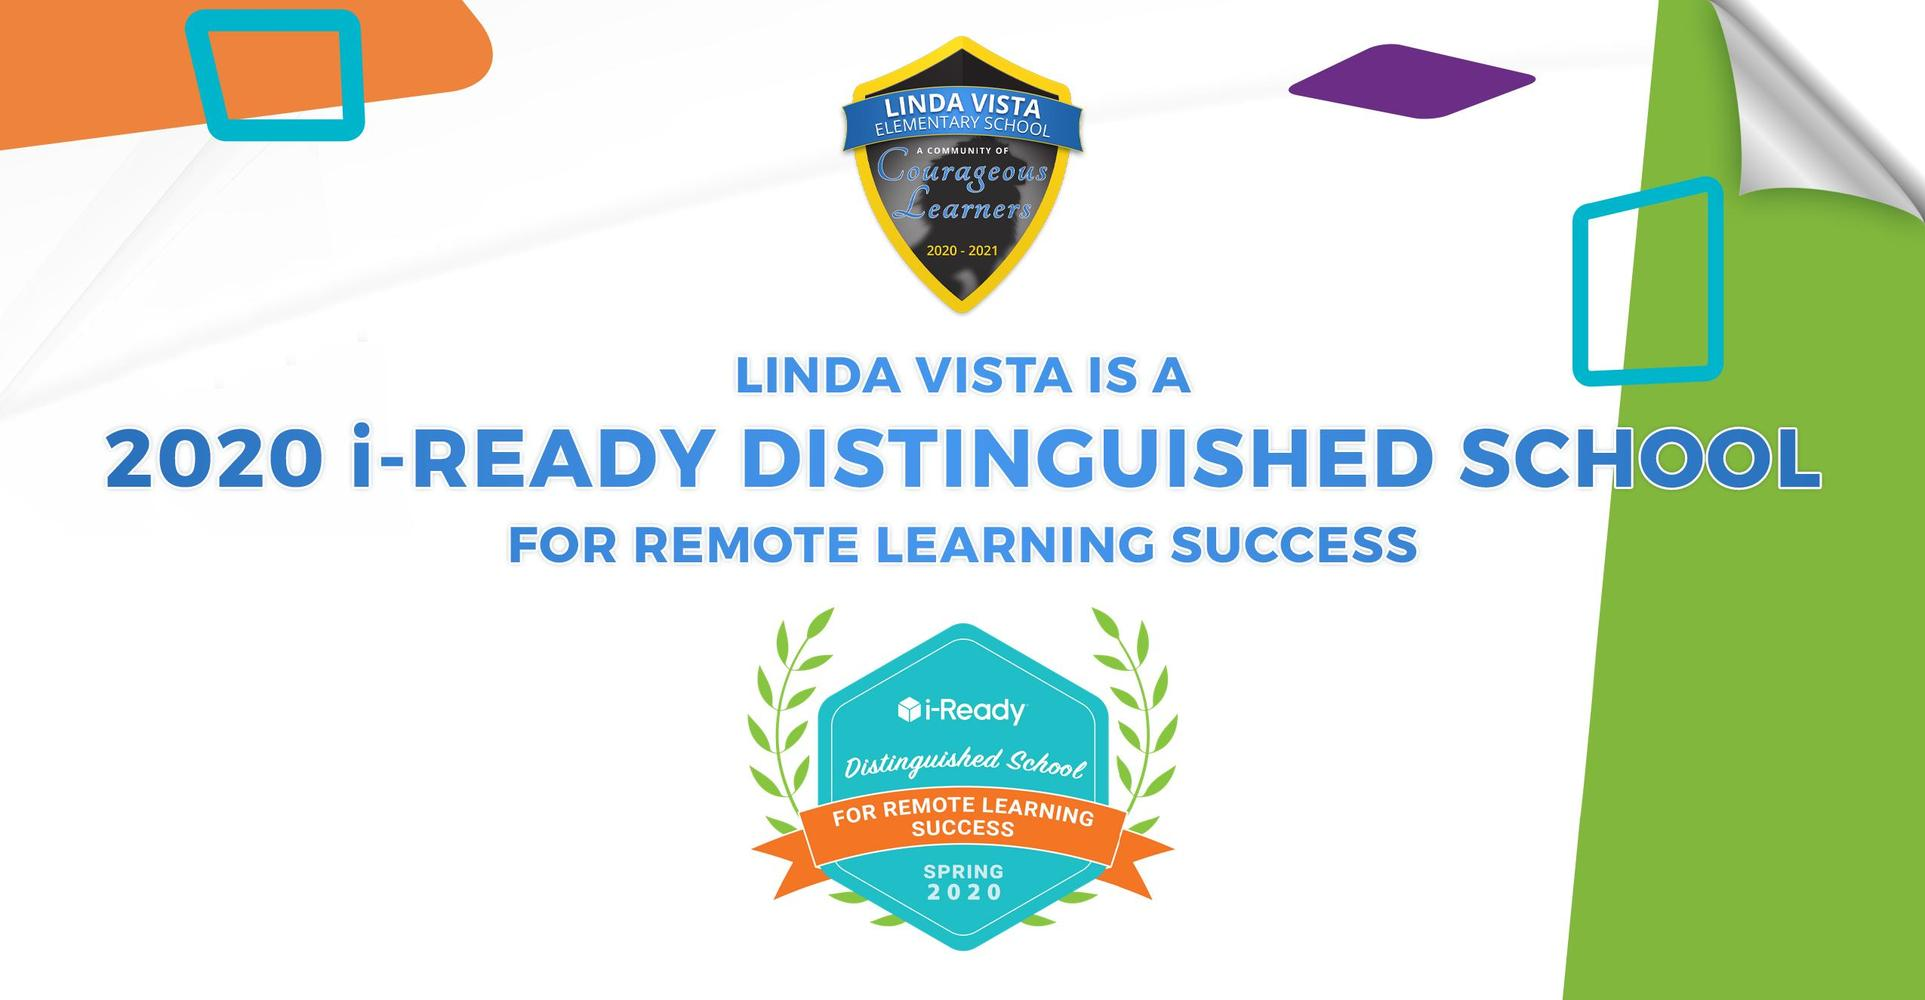 Linda Vista Is Proud to Be a 2020 i-Ready Distinguished School